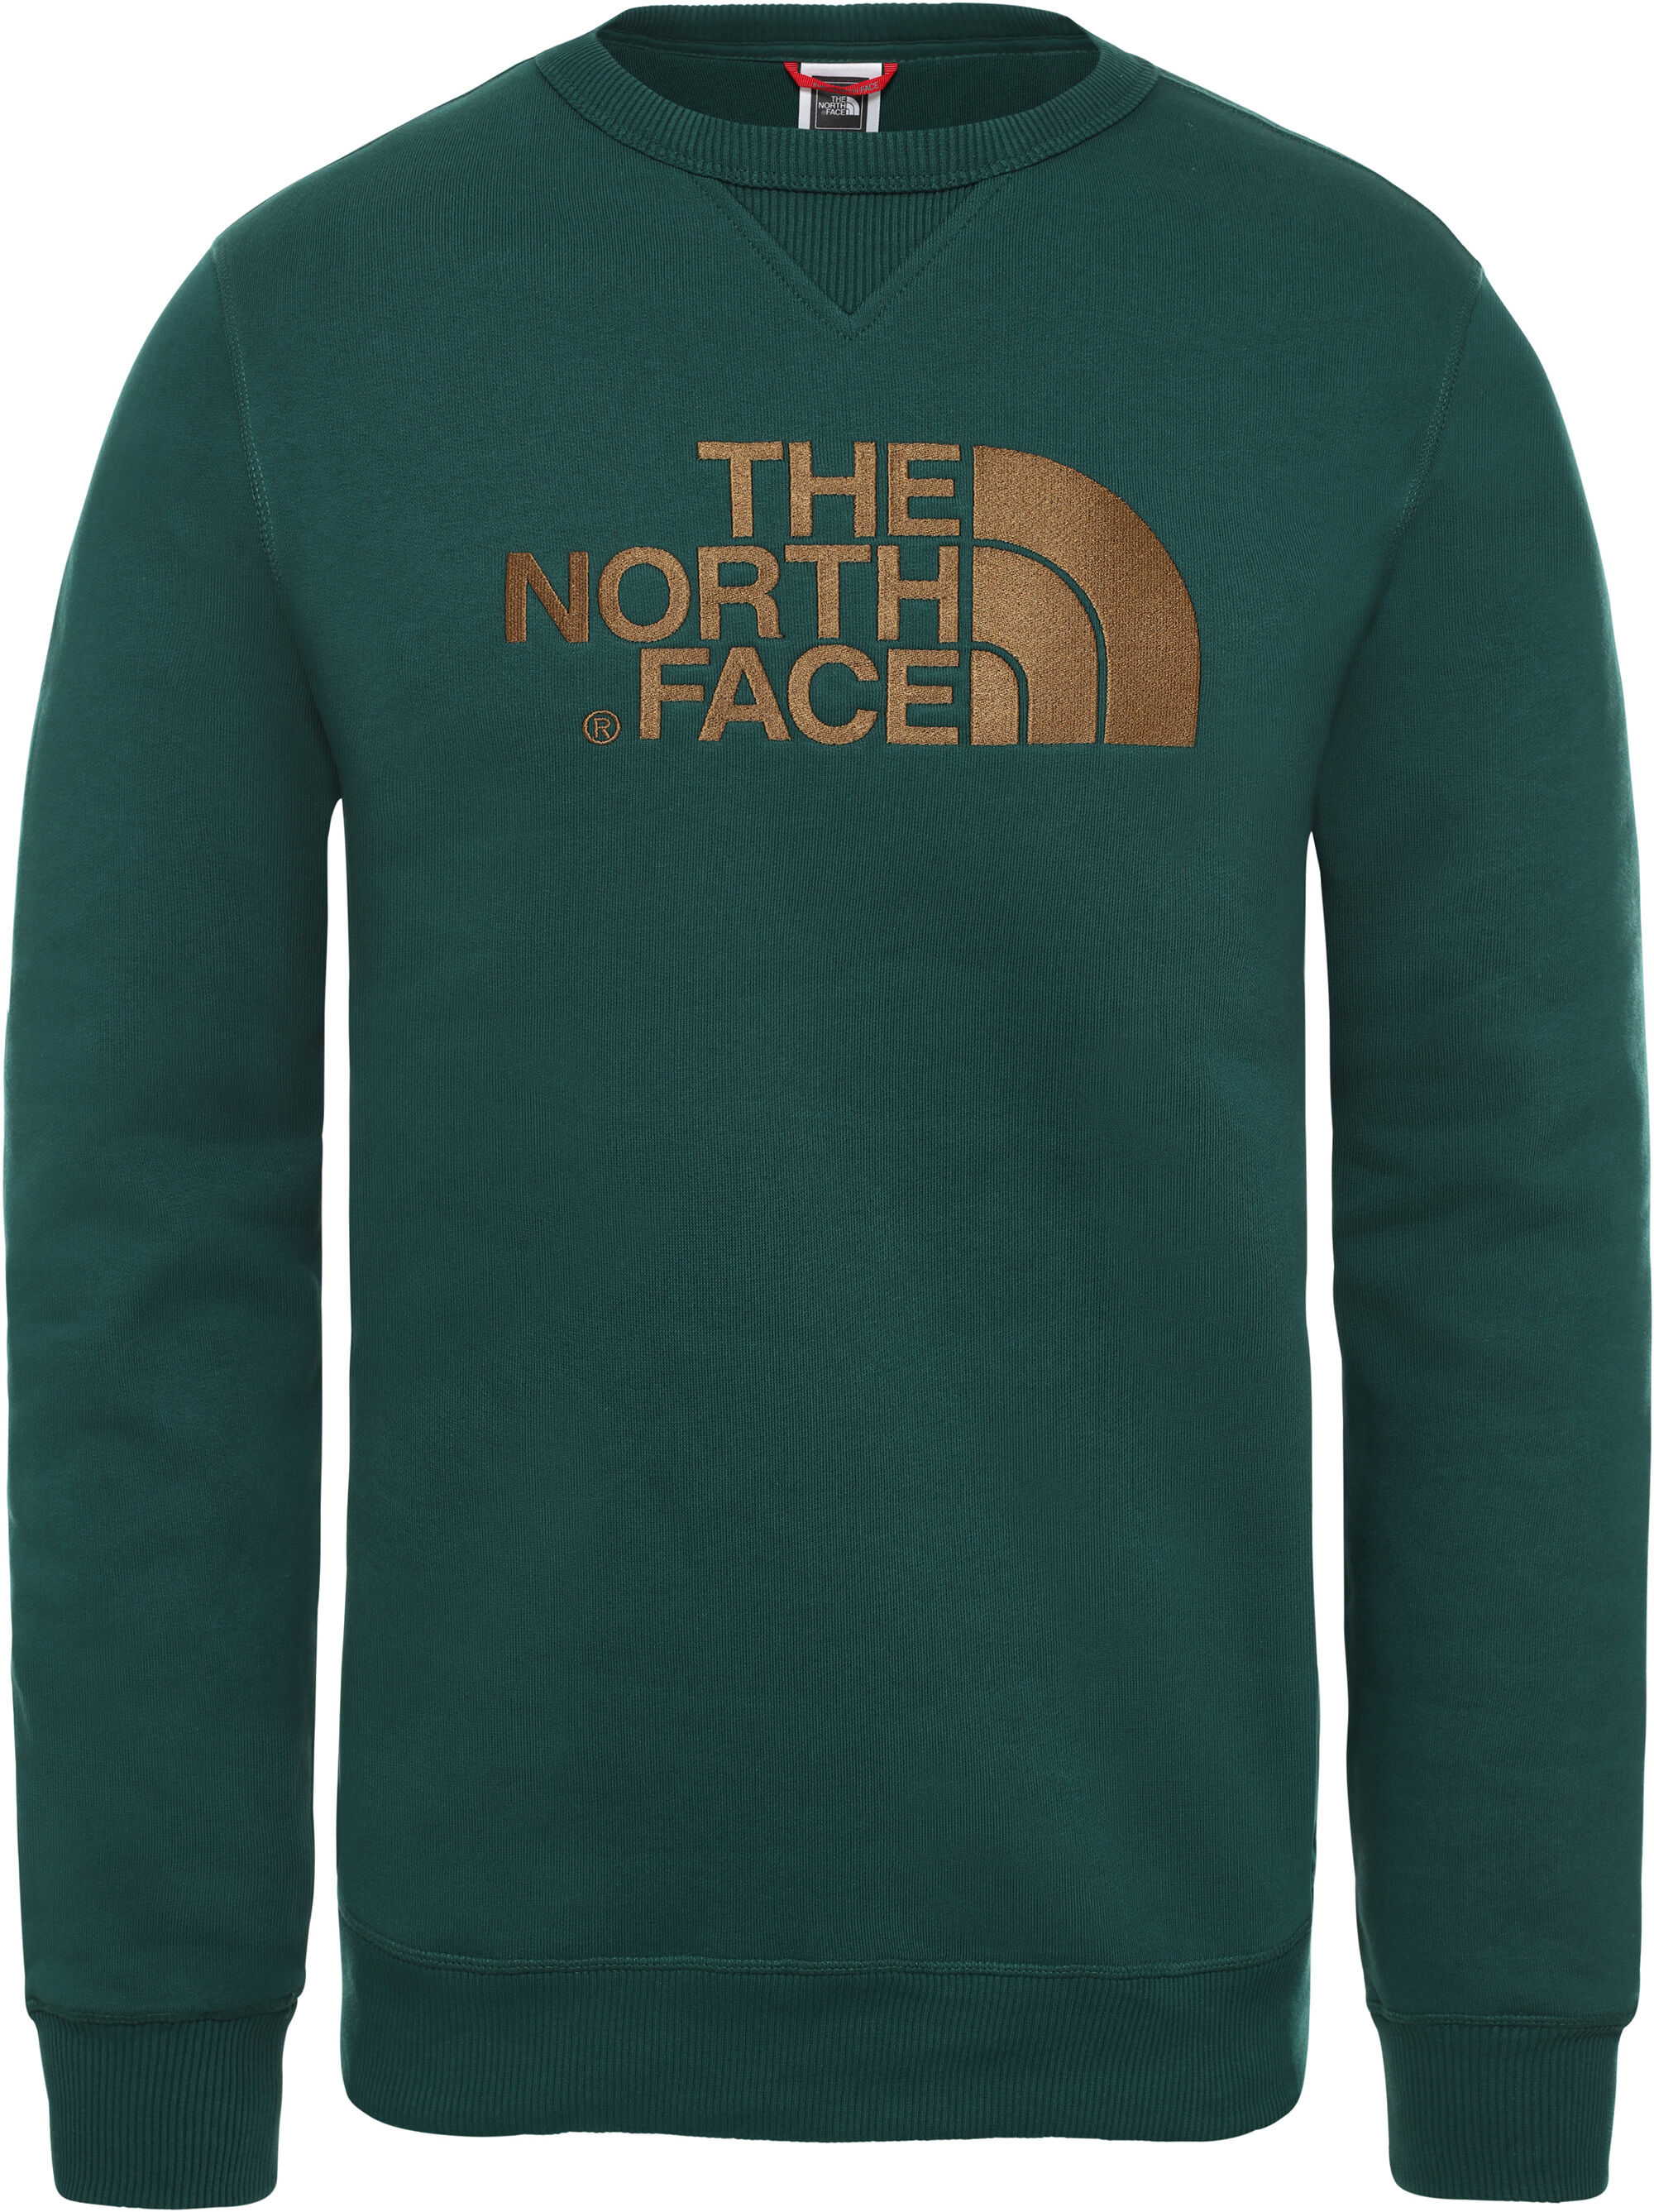 Groene heren trui North Face Drew Peak - NFOA22ZWRN3P